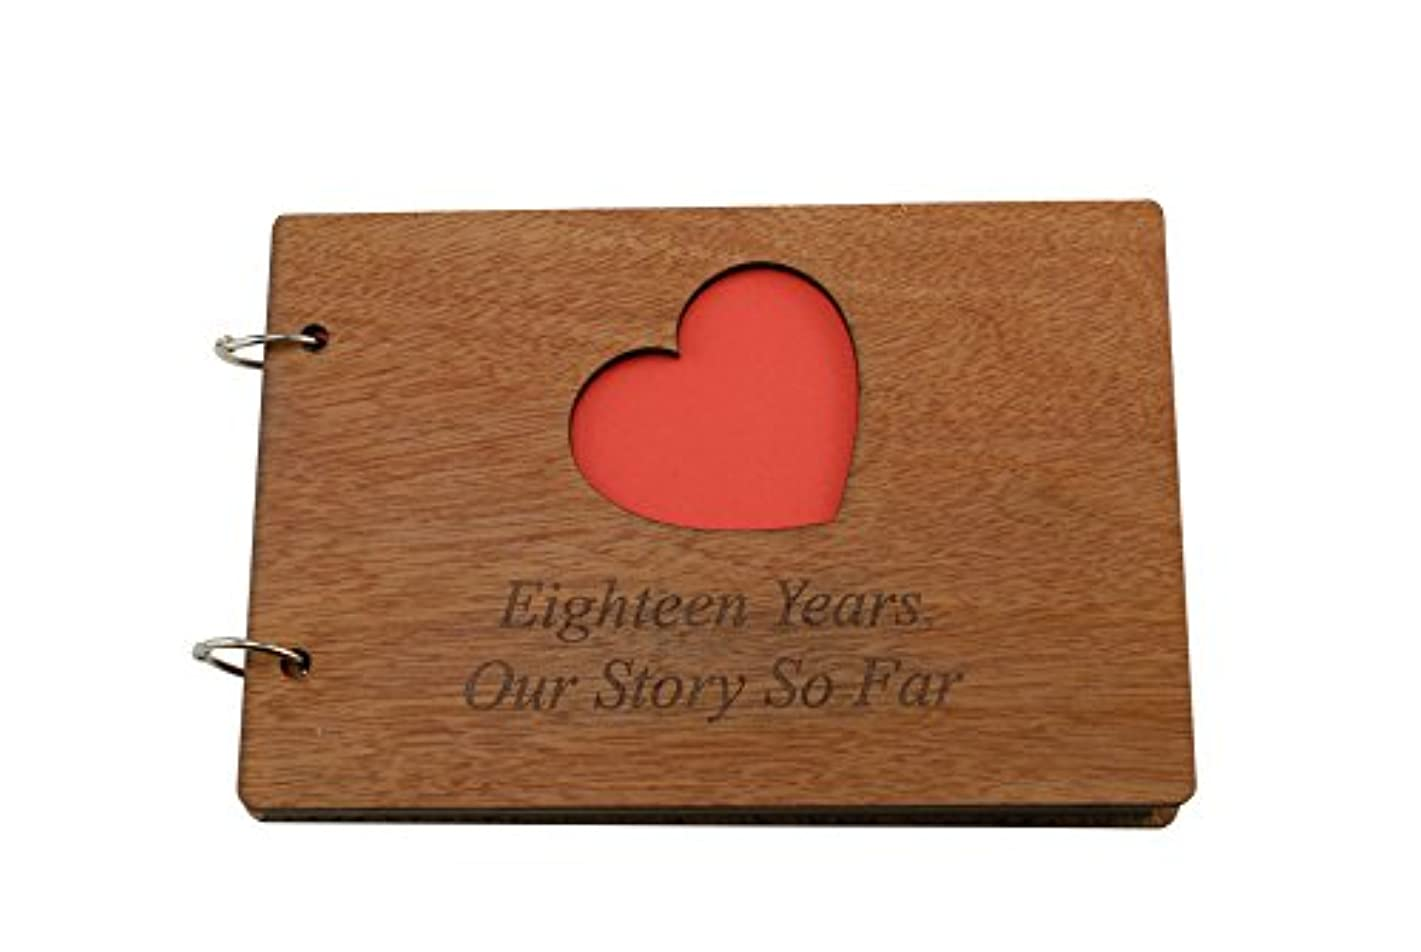 18 Years Our Story So Far - Scrapbook, Photo album or Notebook Idea For 18th Anniversary